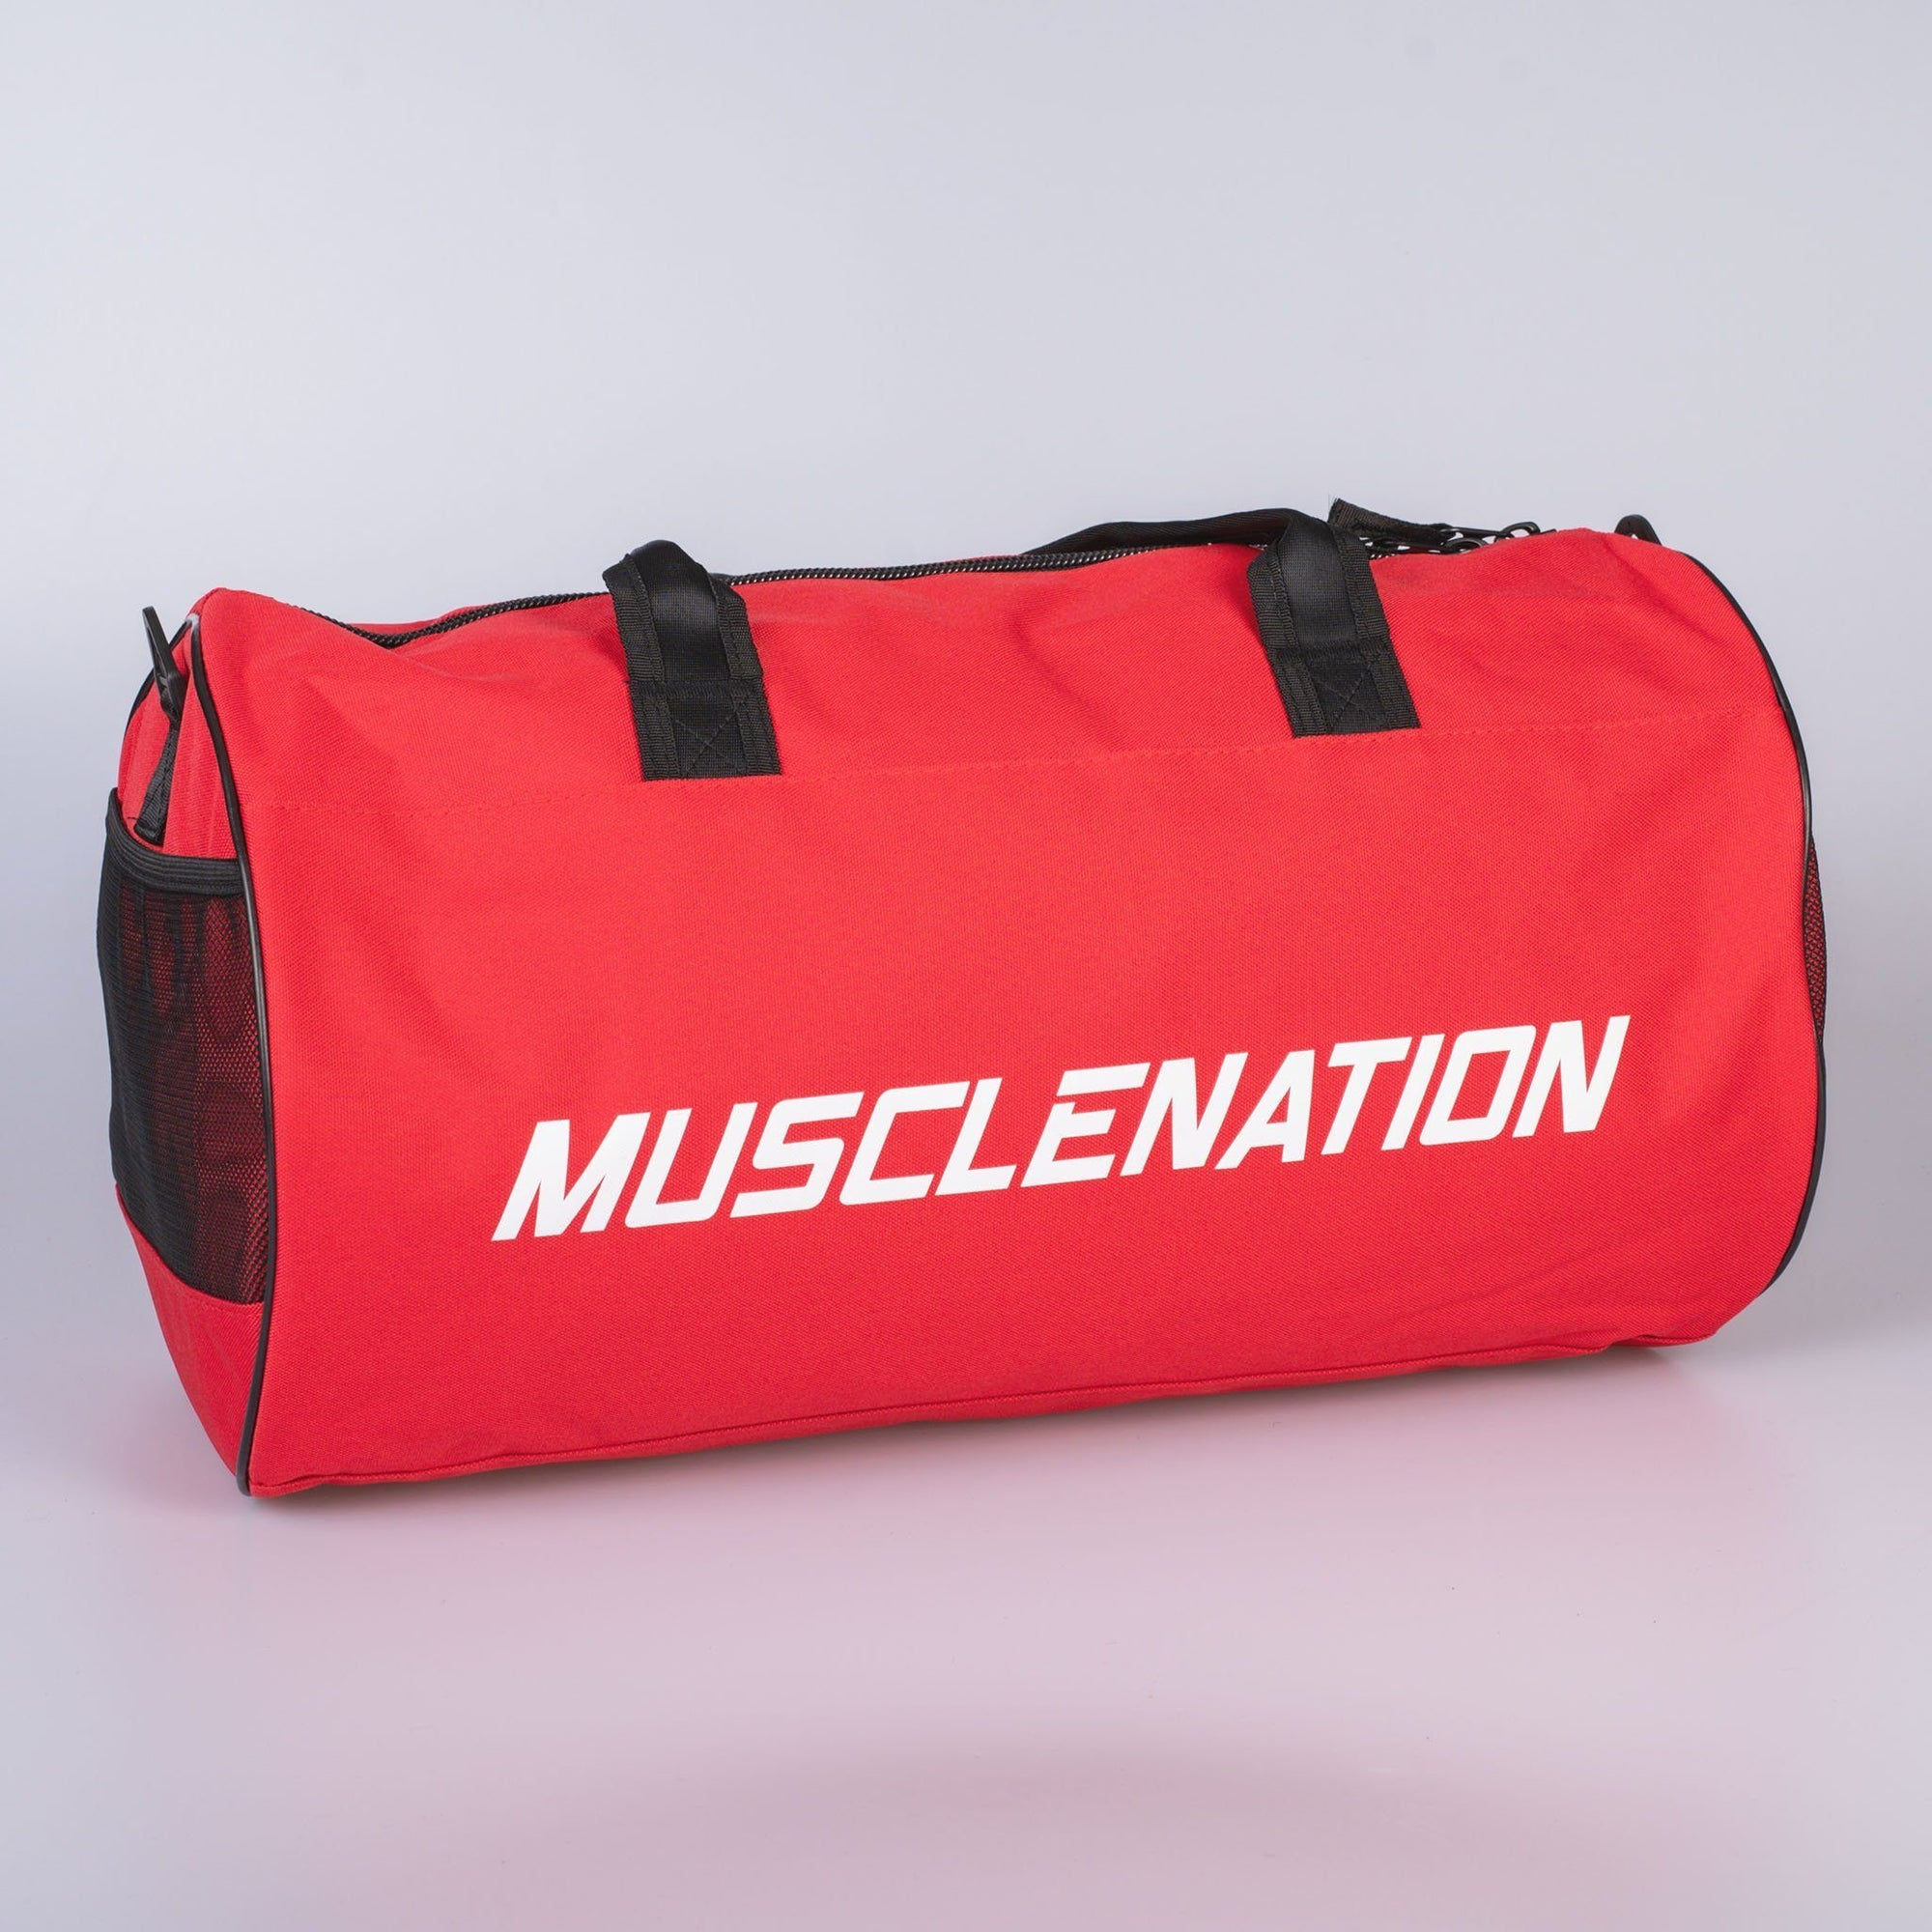 Muscle Nation Round Premium Gym Bag - Red